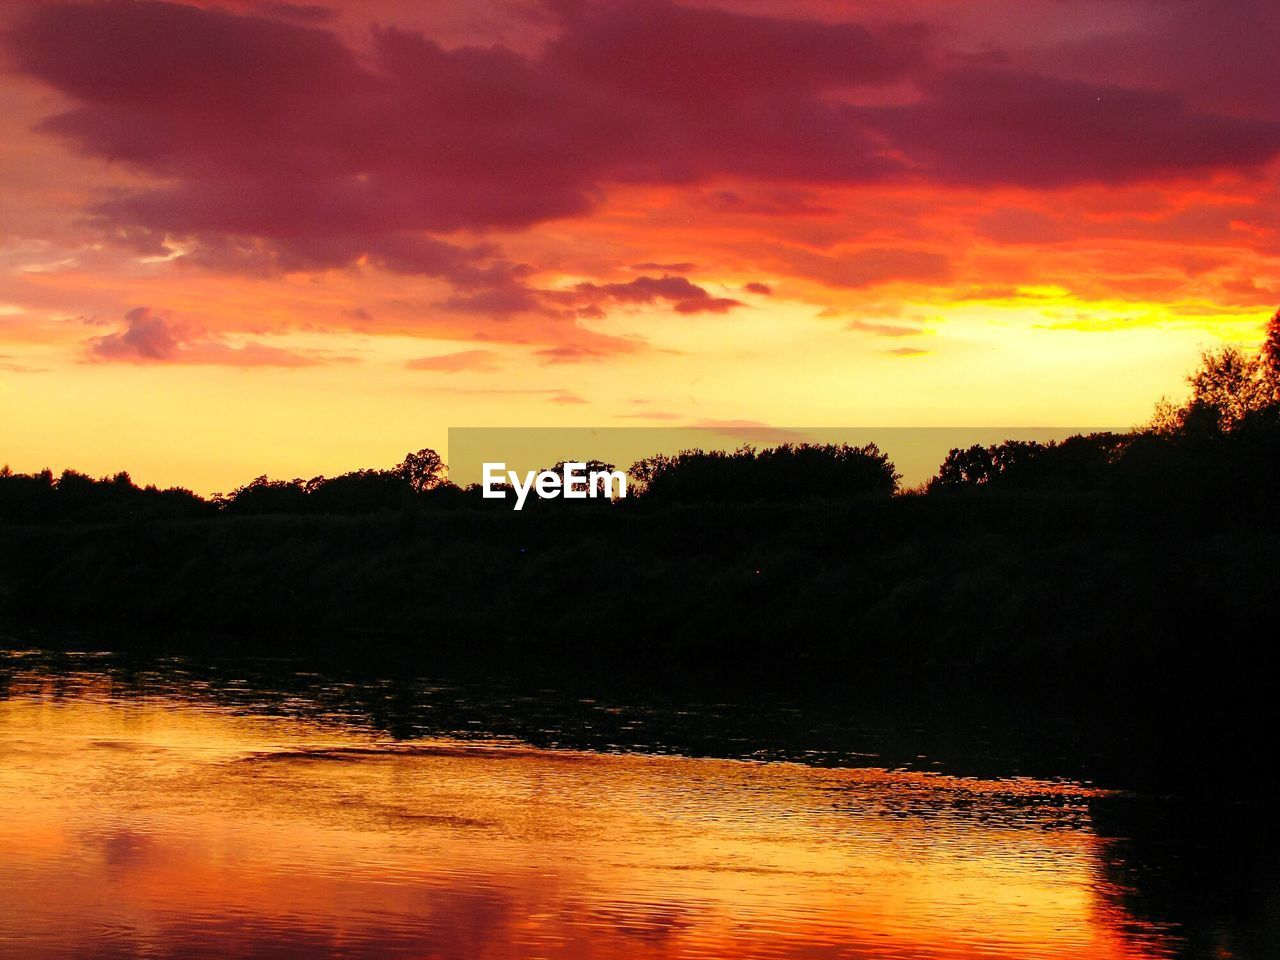 sunset, sky, beauty in nature, tranquility, cloud - sky, orange color, tranquil scene, scenics - nature, water, tree, lake, silhouette, plant, no people, nature, idyllic, waterfront, reflection, non-urban scene, outdoors, romantic sky